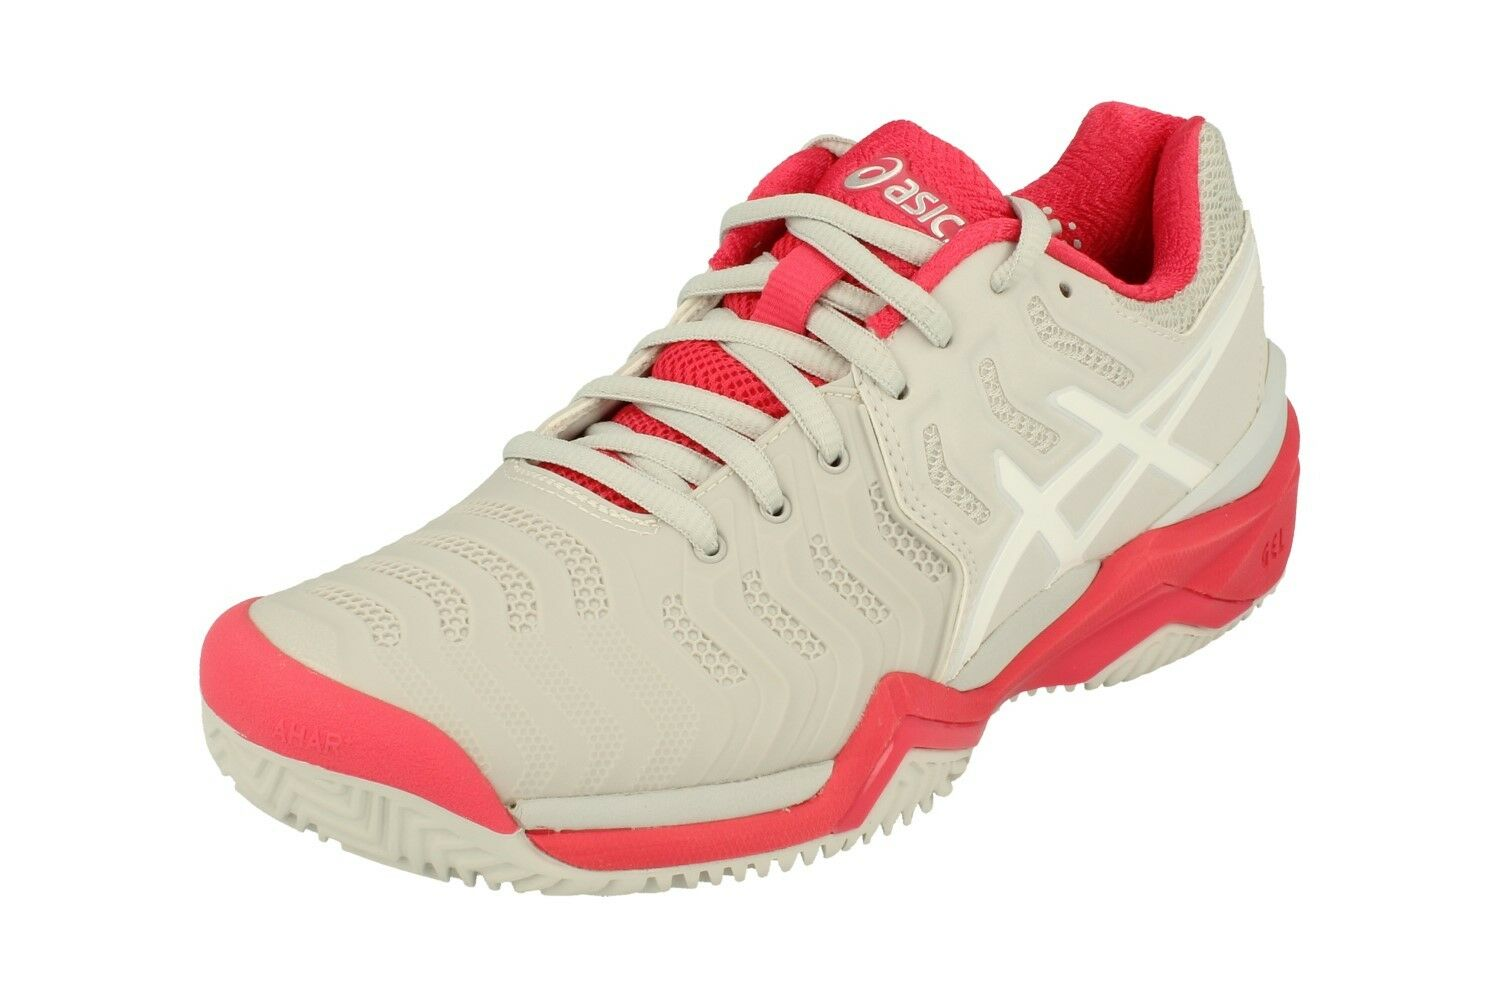 Asics Gel-Resolution 7 Clay Womens Tennis shoes E752Y Sneakers Trainers 9601